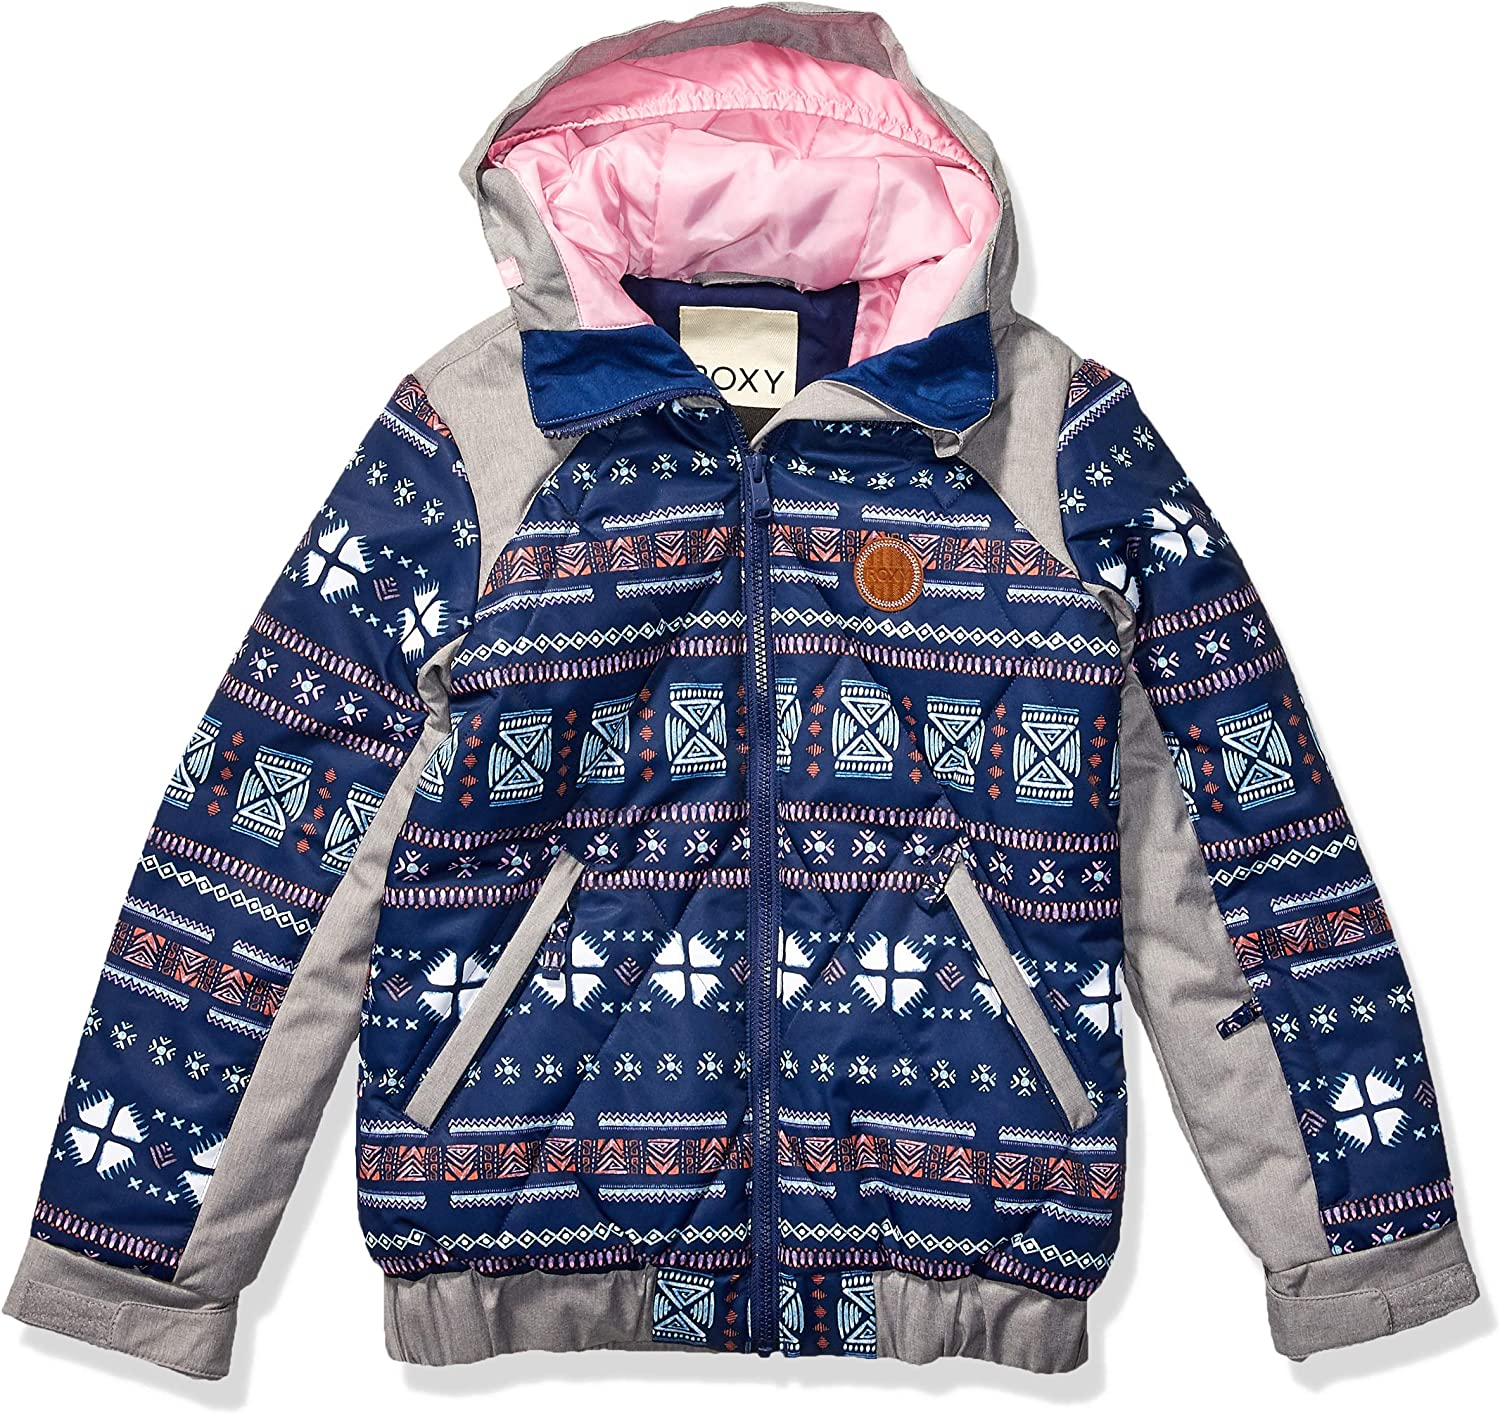 Roxy Big Lowland Girl Jacket Free shipping on posting reviews Super sale